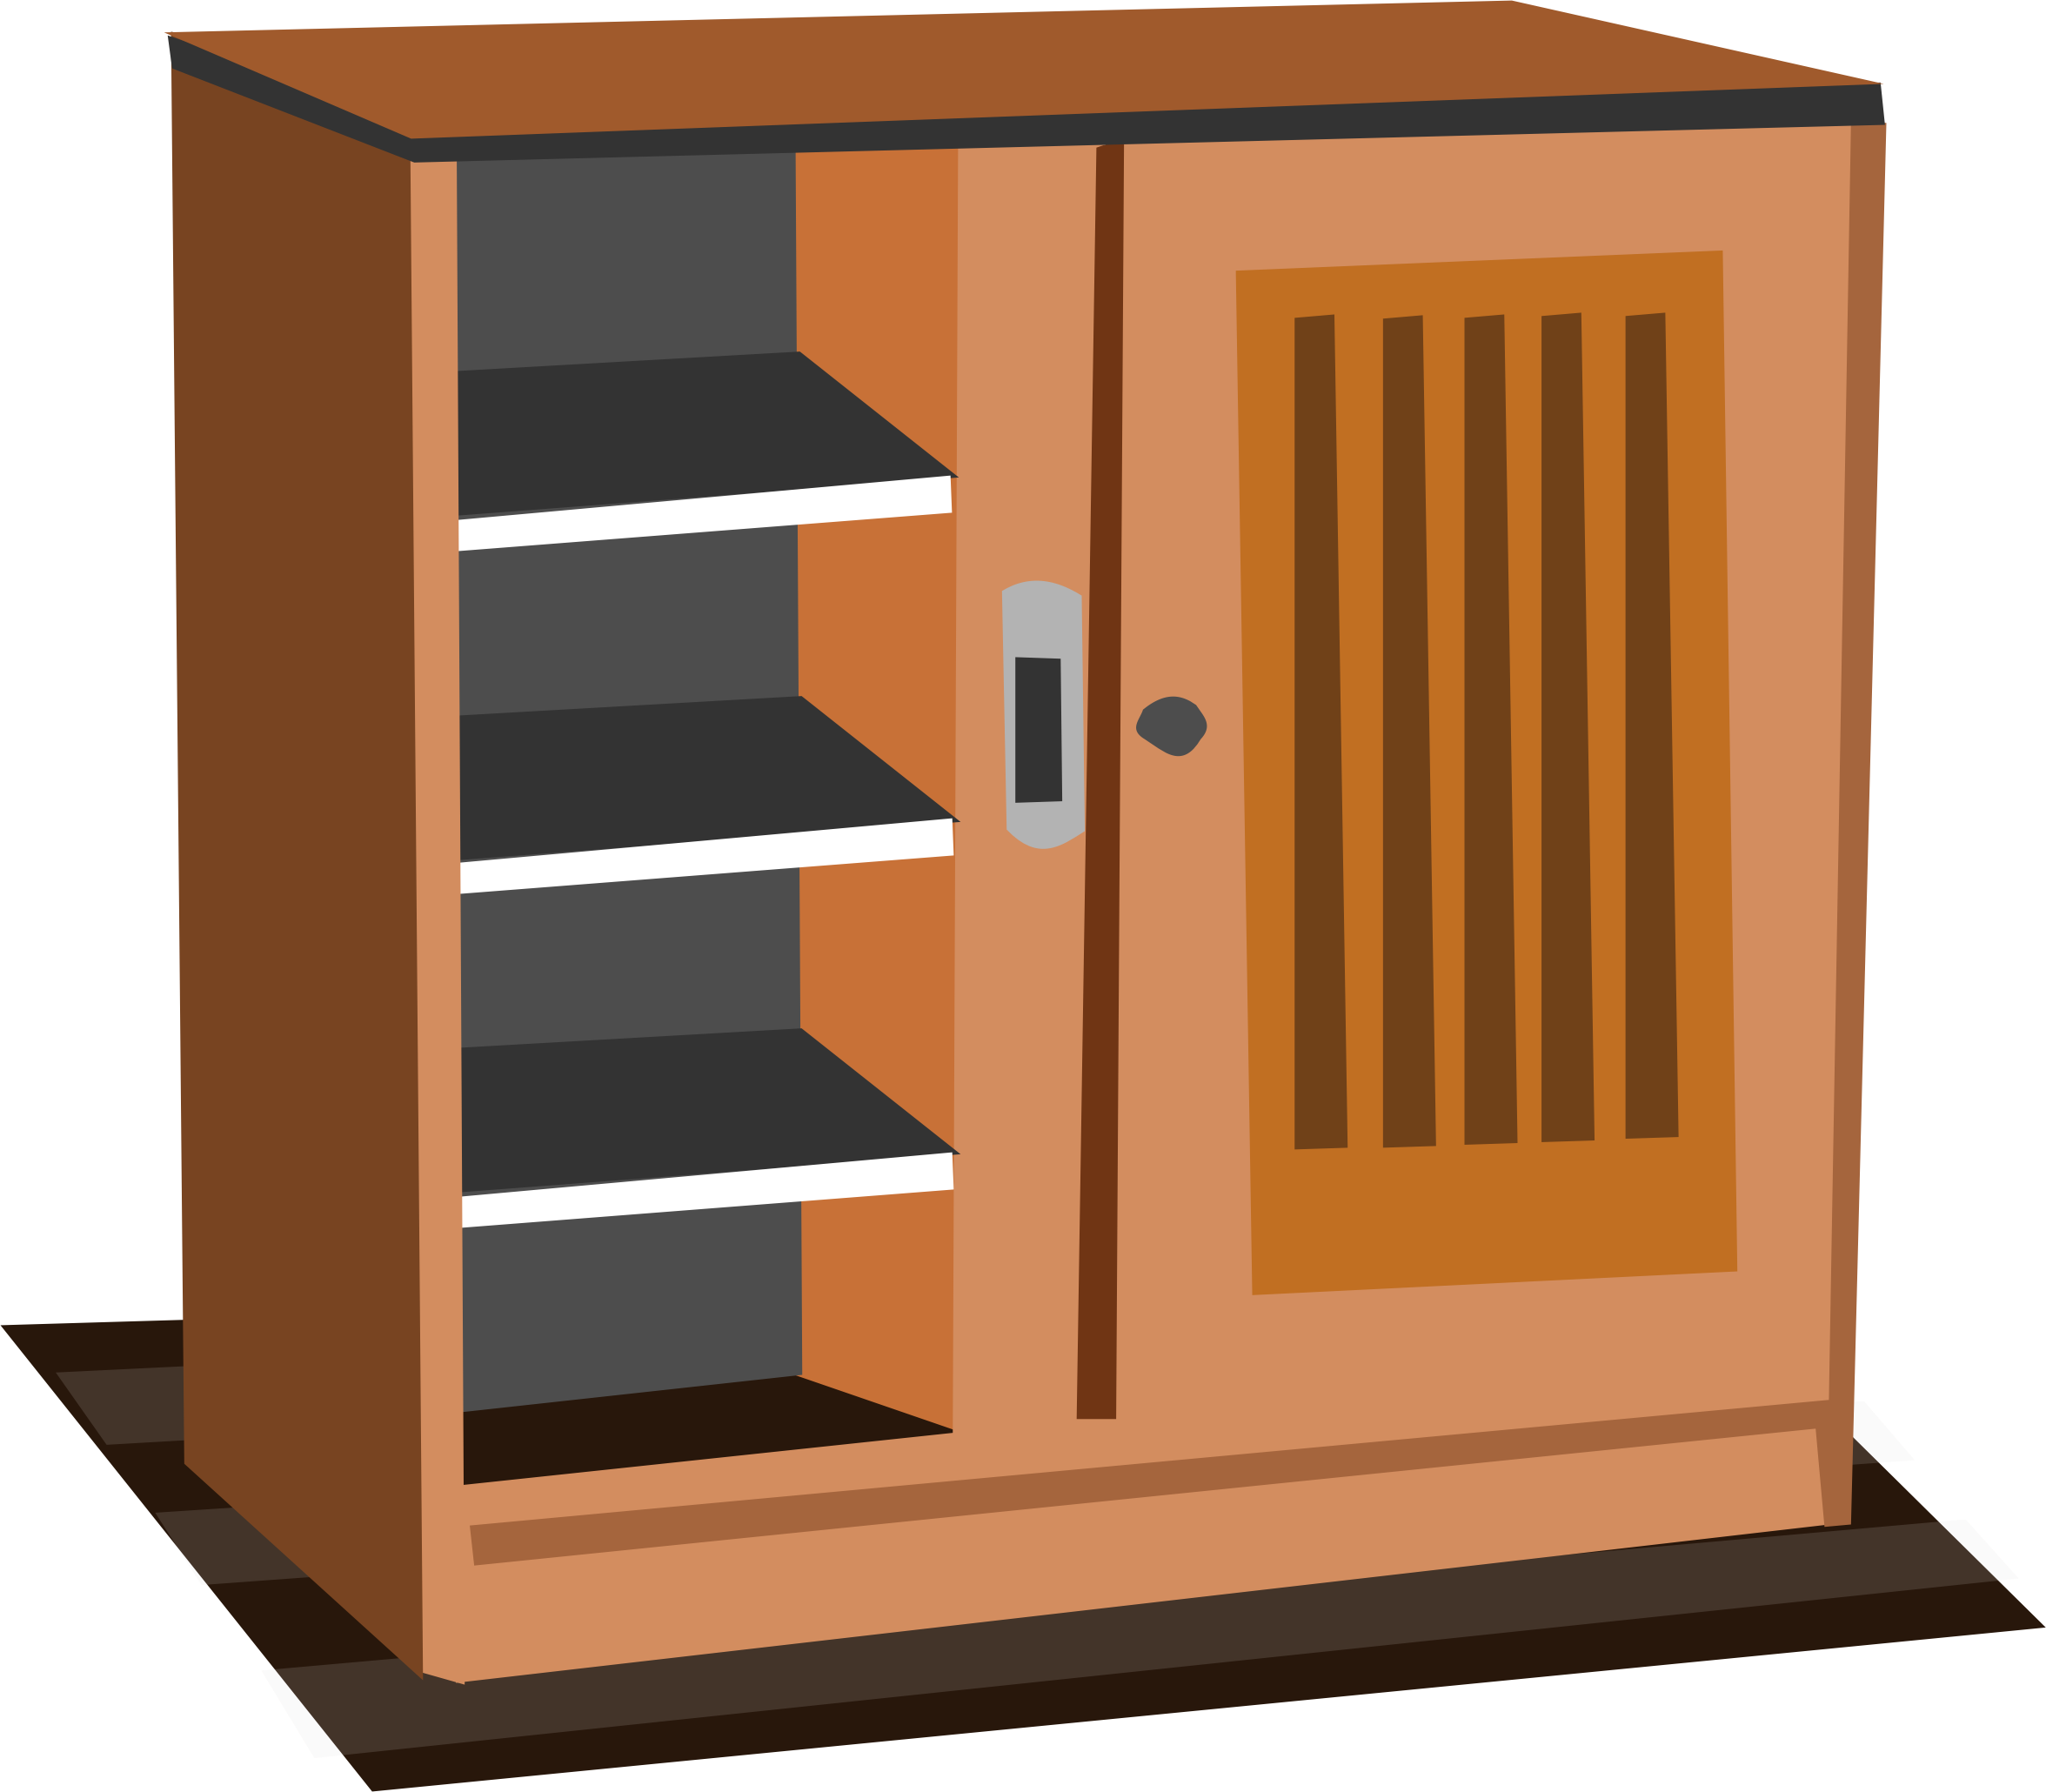 Kitchen Cabinet Clip Art: Cupboard Clipart No Copyright